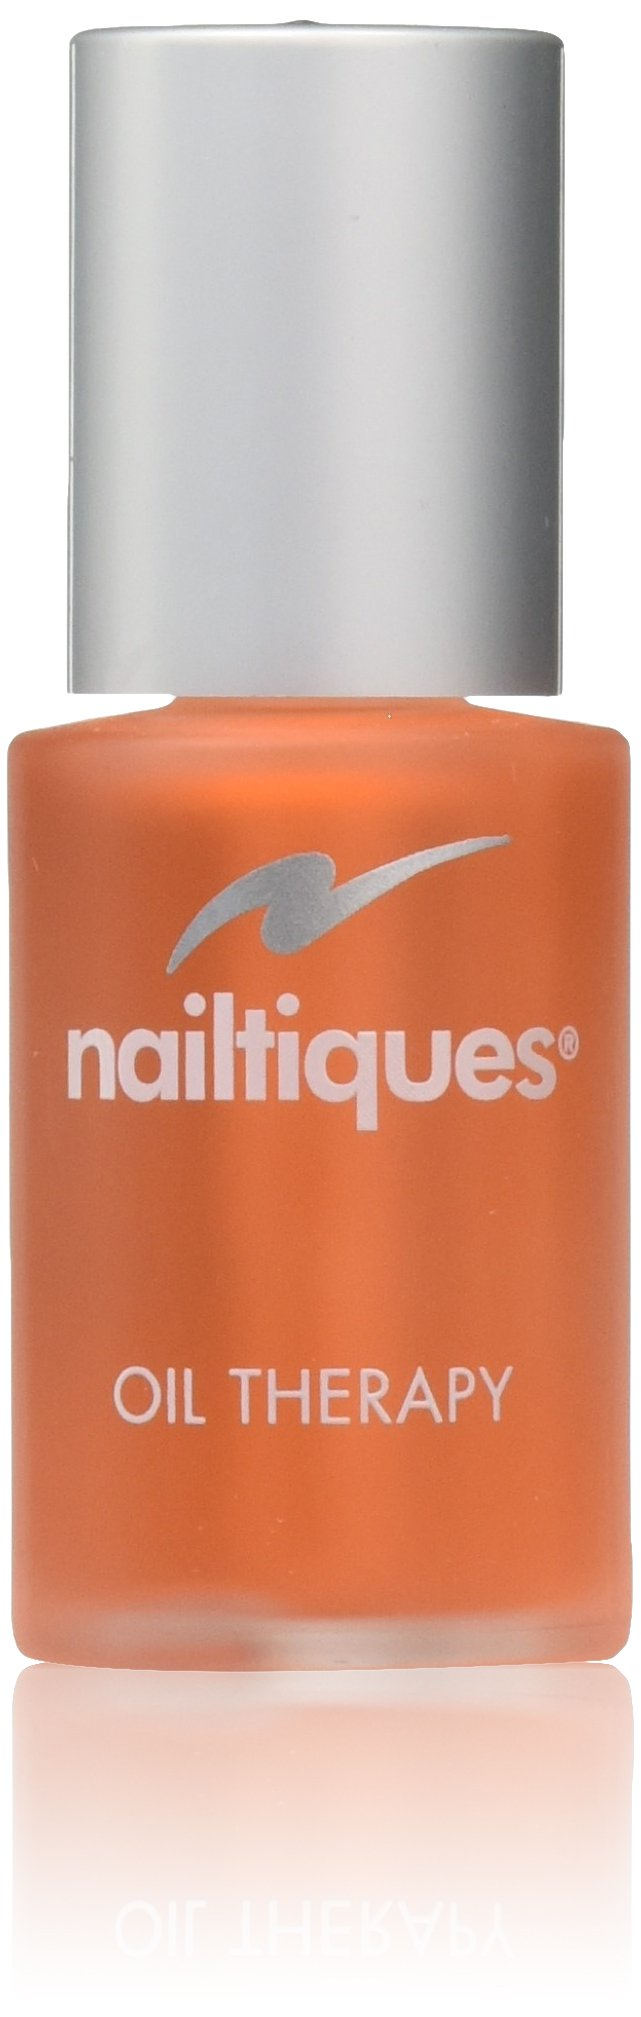 Nailtiques Oil Therapy, 0.5 Ounce